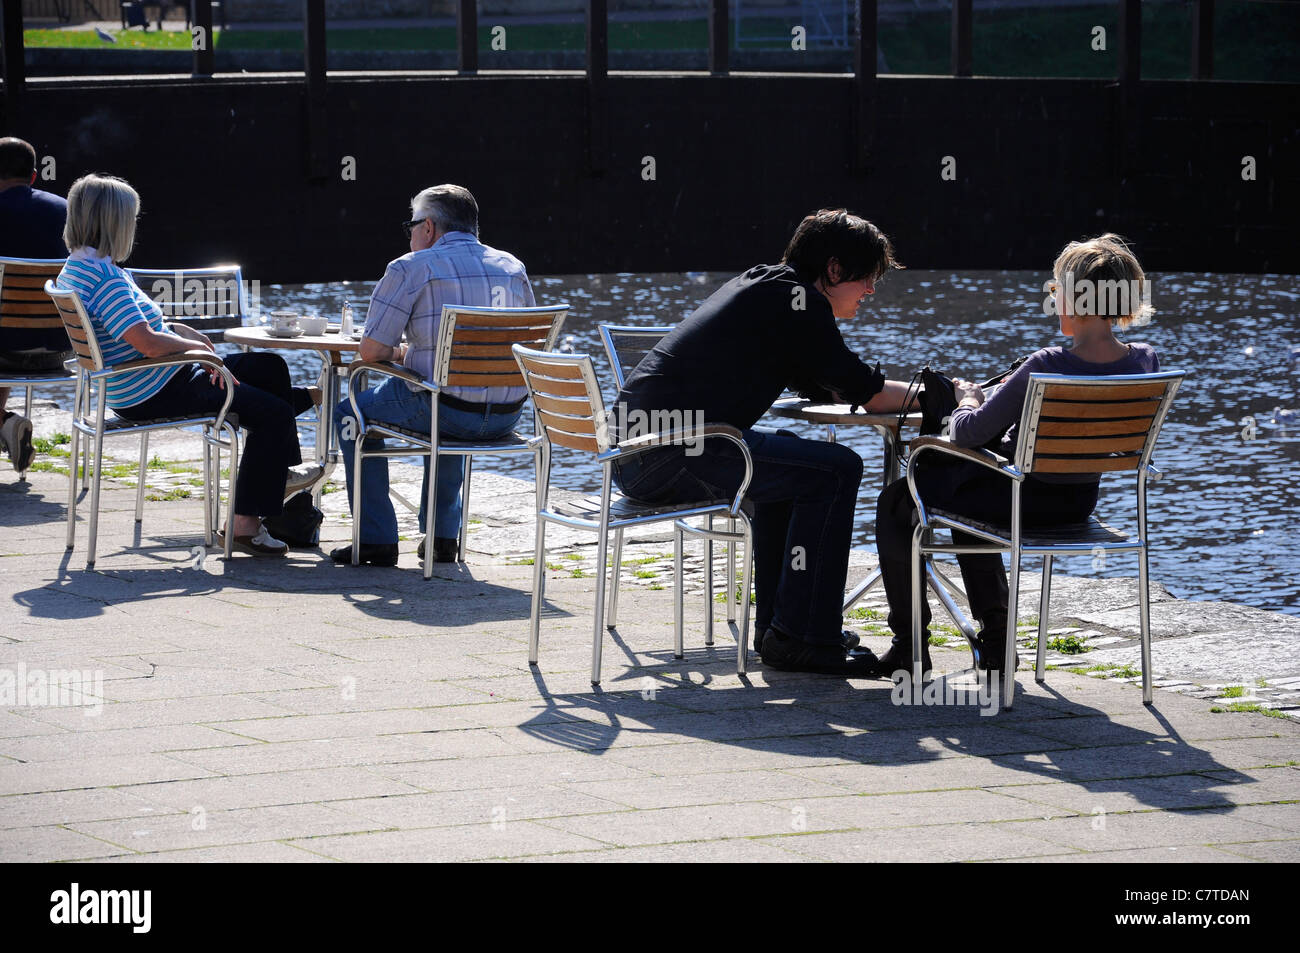 people sitting at outdoor cafe tables exeter quayside devon uk